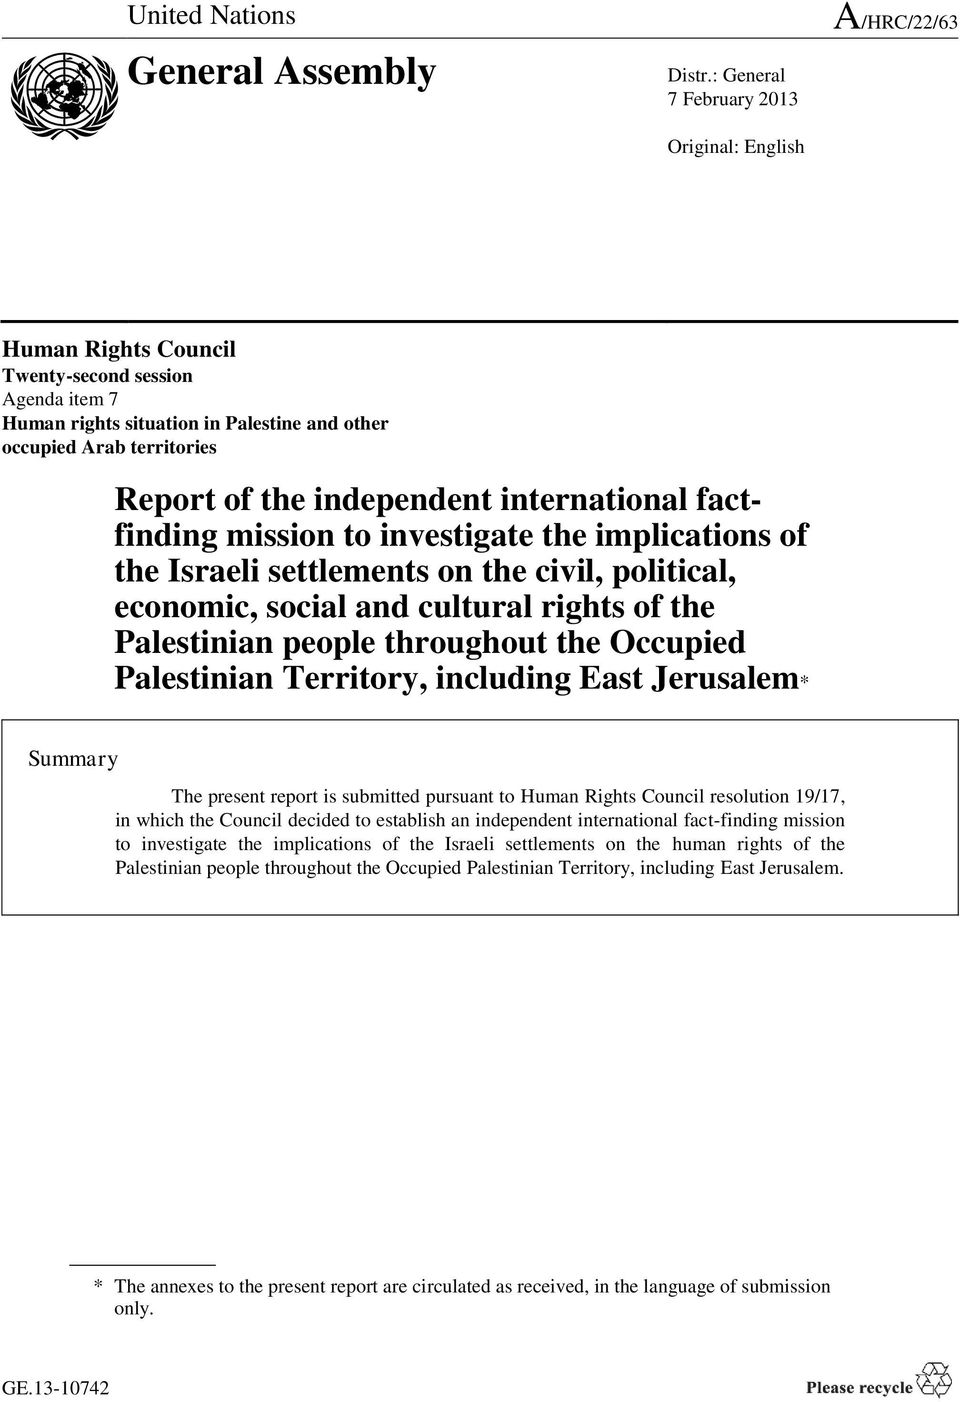 independent international factfinding mission to investigate the implications of the Israeli settlements on the civil, political, economic, social and cultural rights of the Palestinian people